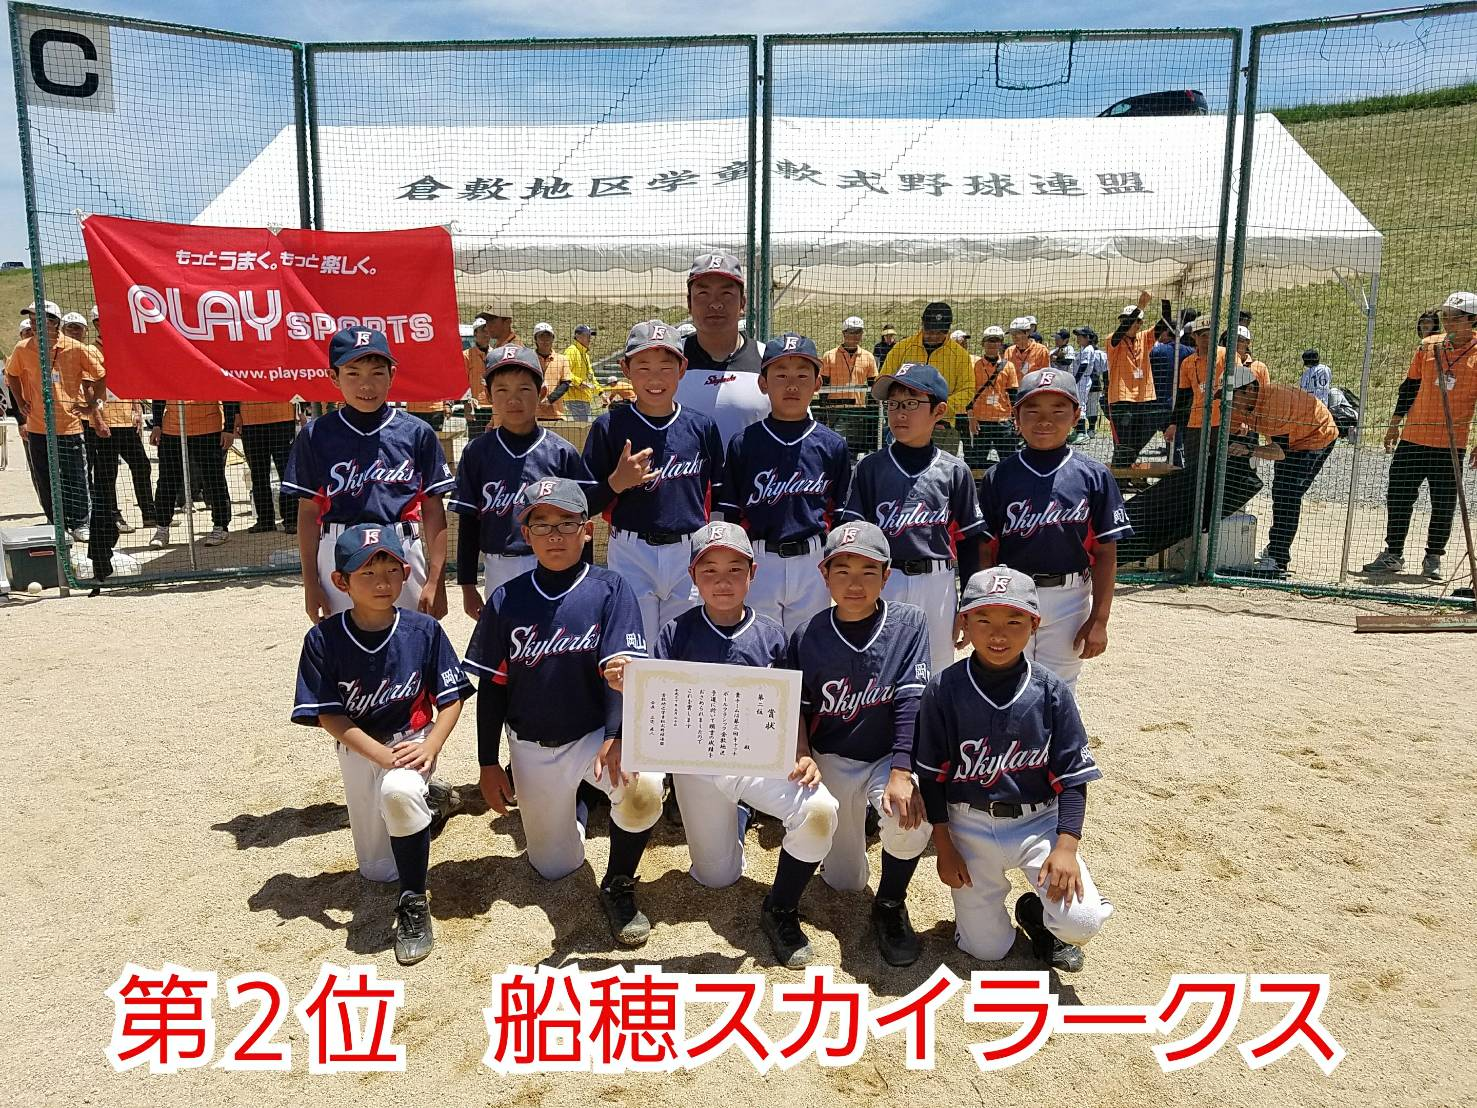 http://www.playsports.jp/news/images/7988747463971.jpg